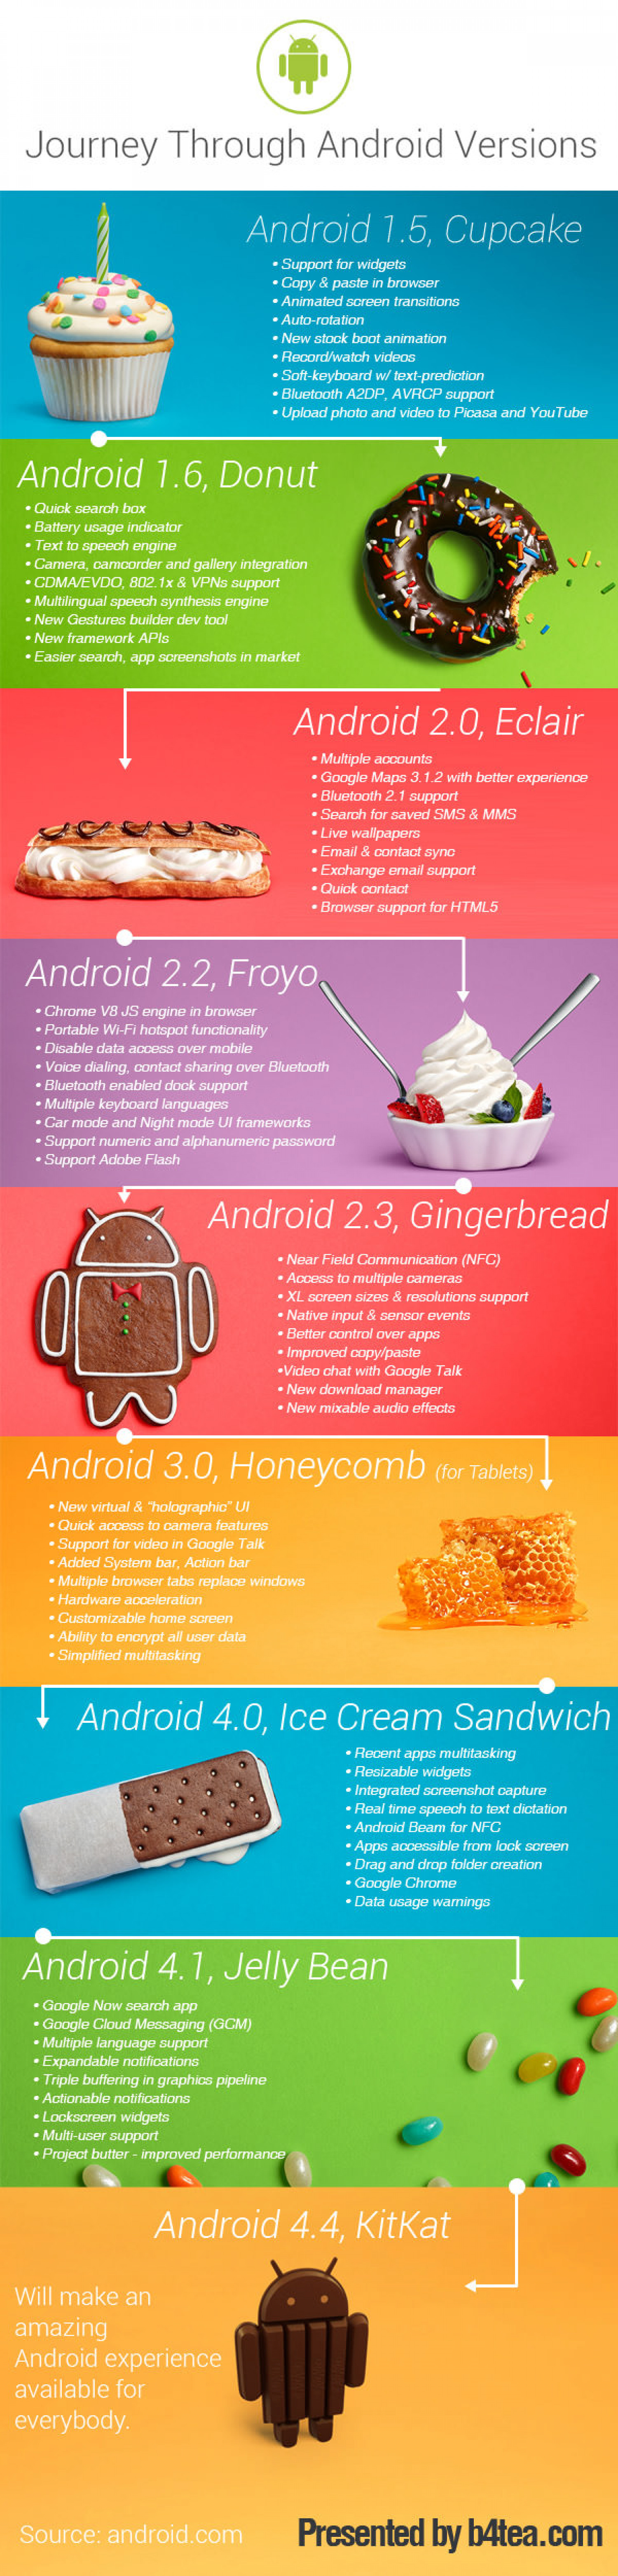 Journey Through Android OS Featuers - Visual Timeline Infographic